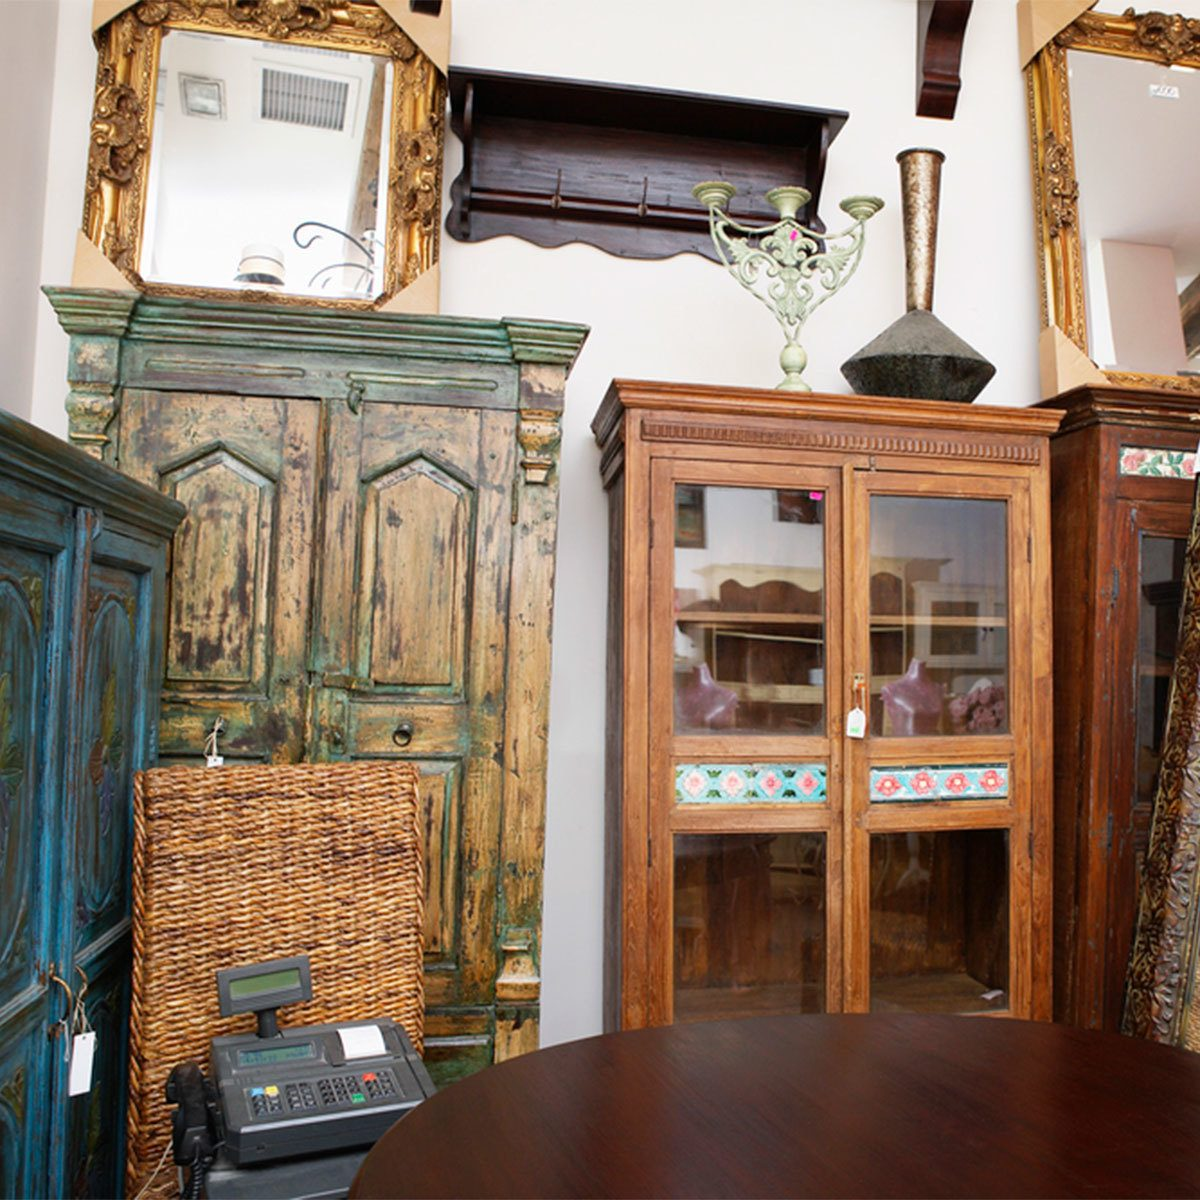 furniture store antiques old bookcases